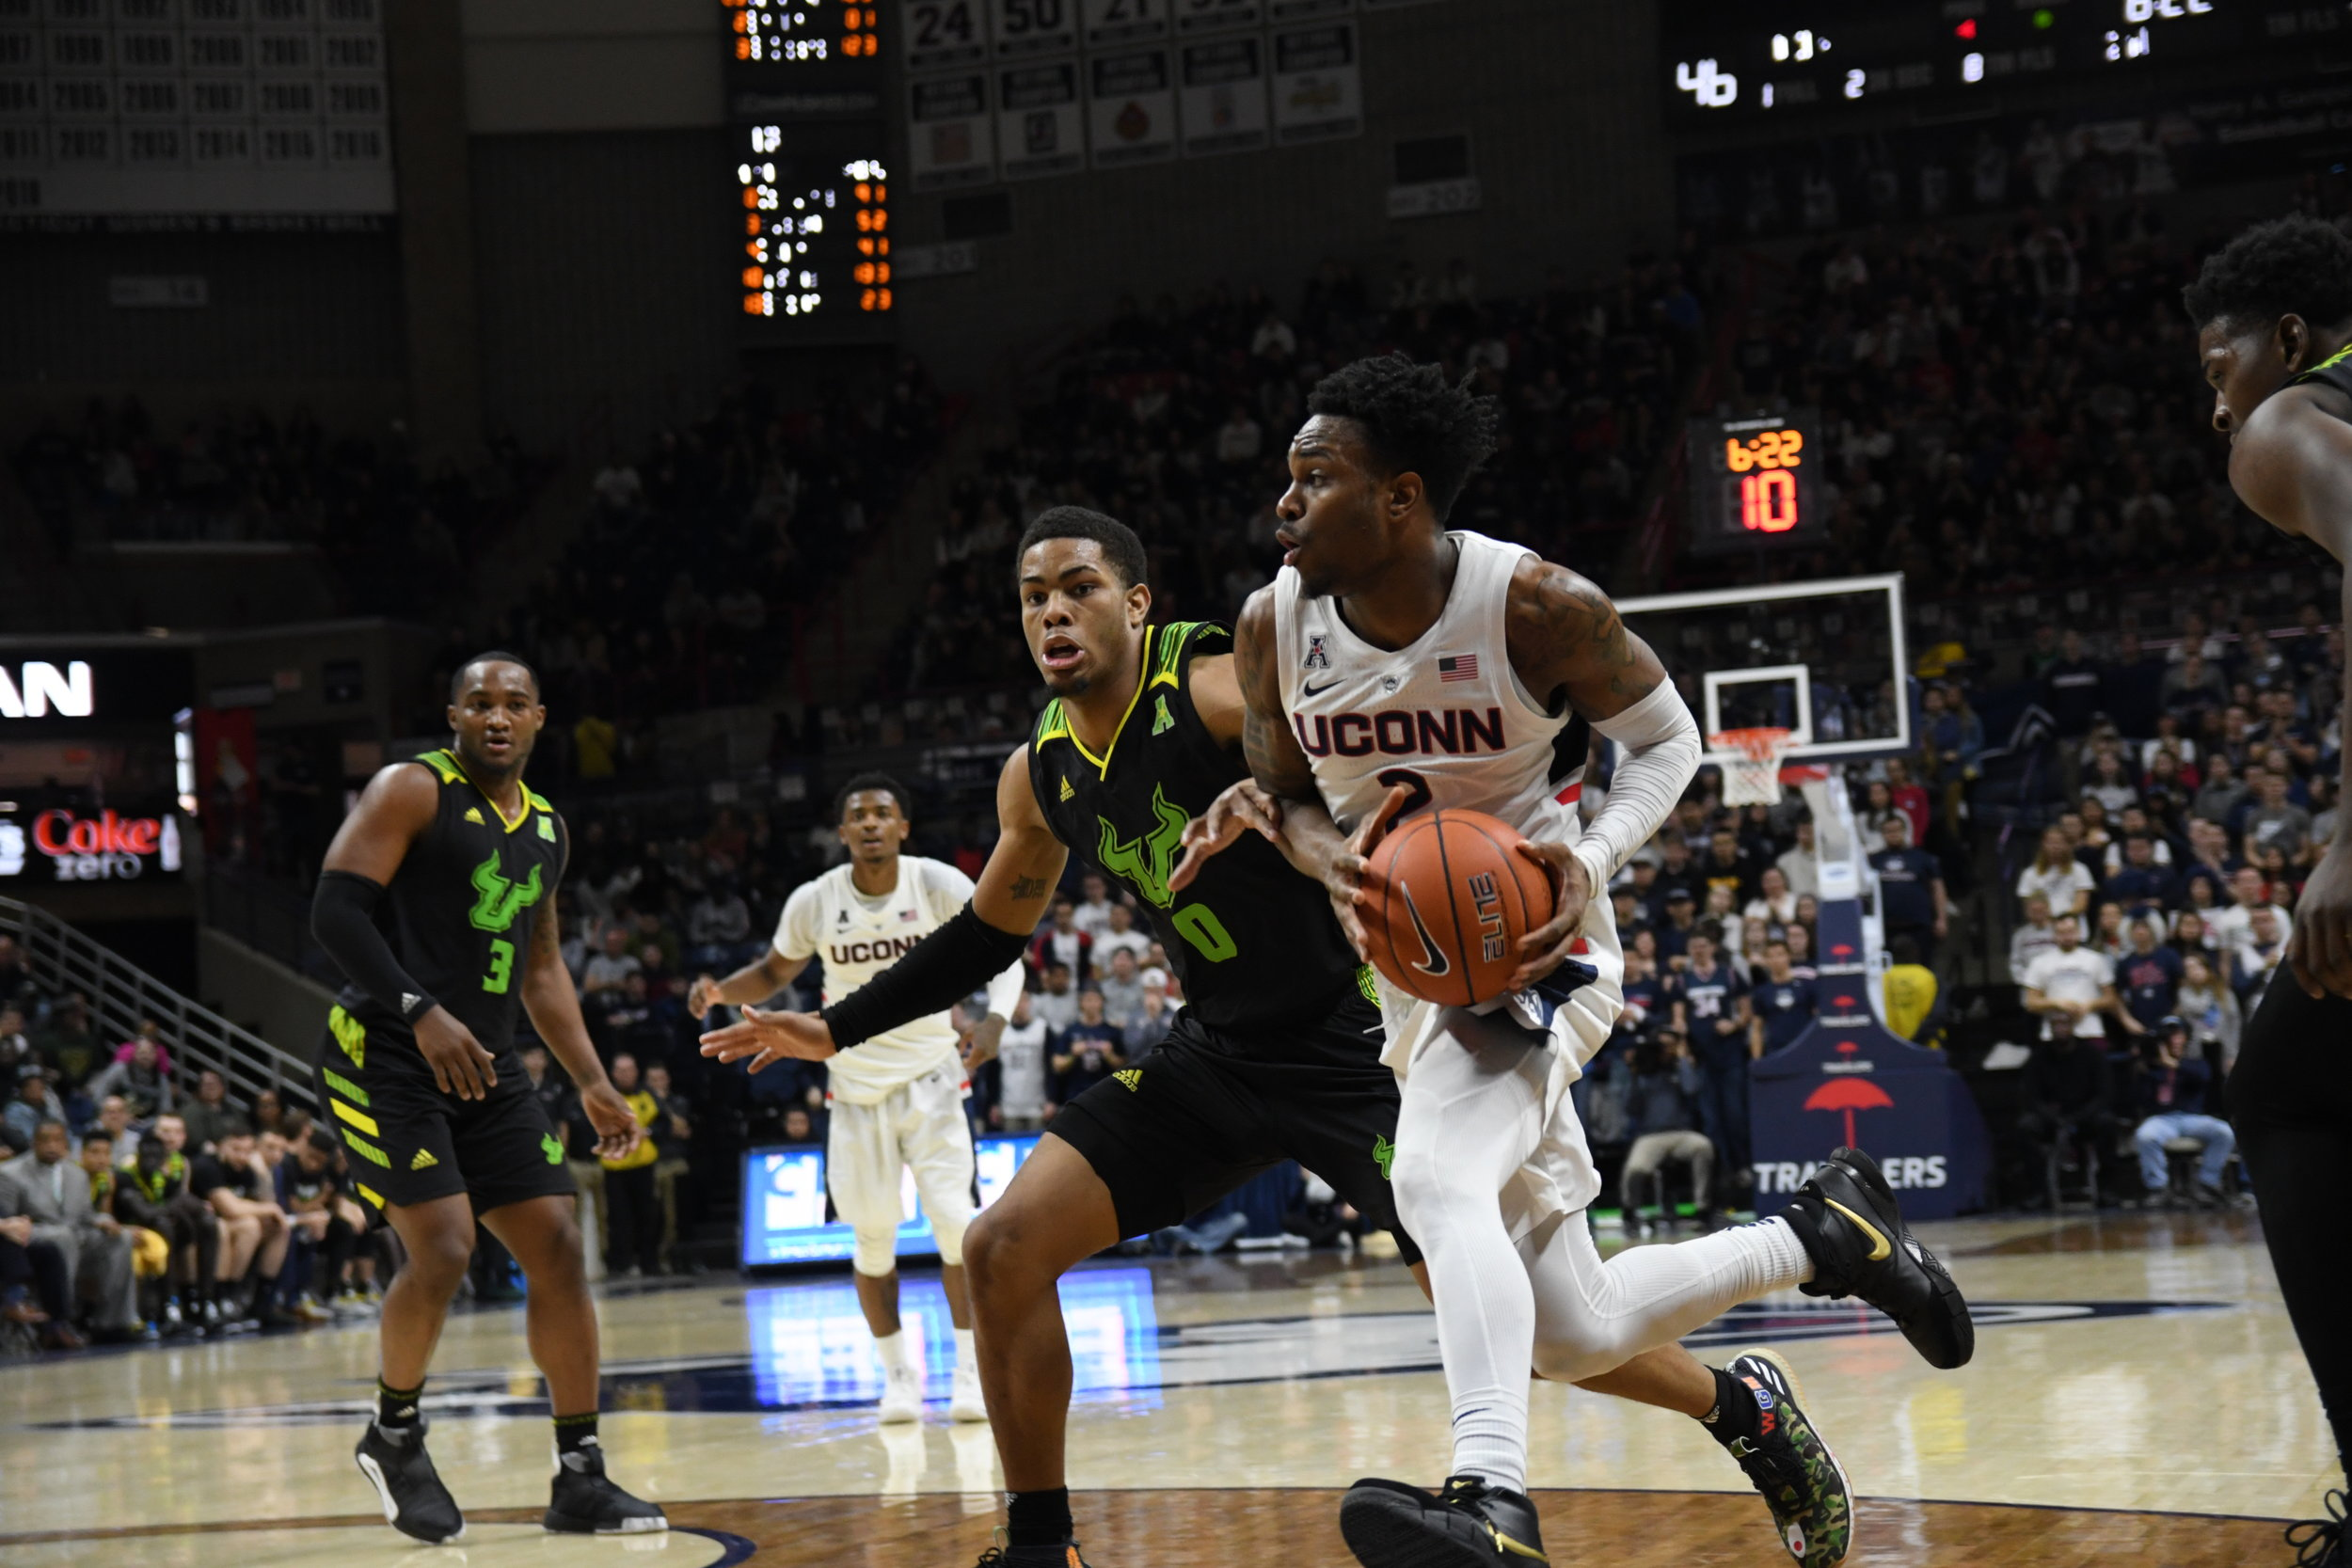 The Huskies beat USF Sunday afternoon in Gampel Pavilion. The game was close with a halftime score of 28-27 UConn and a final win for UConn with a score of 60-58. Their next game is Thursday March 7 in Gampel. (Photo by Nicholas Hampton/The Daily Campus)